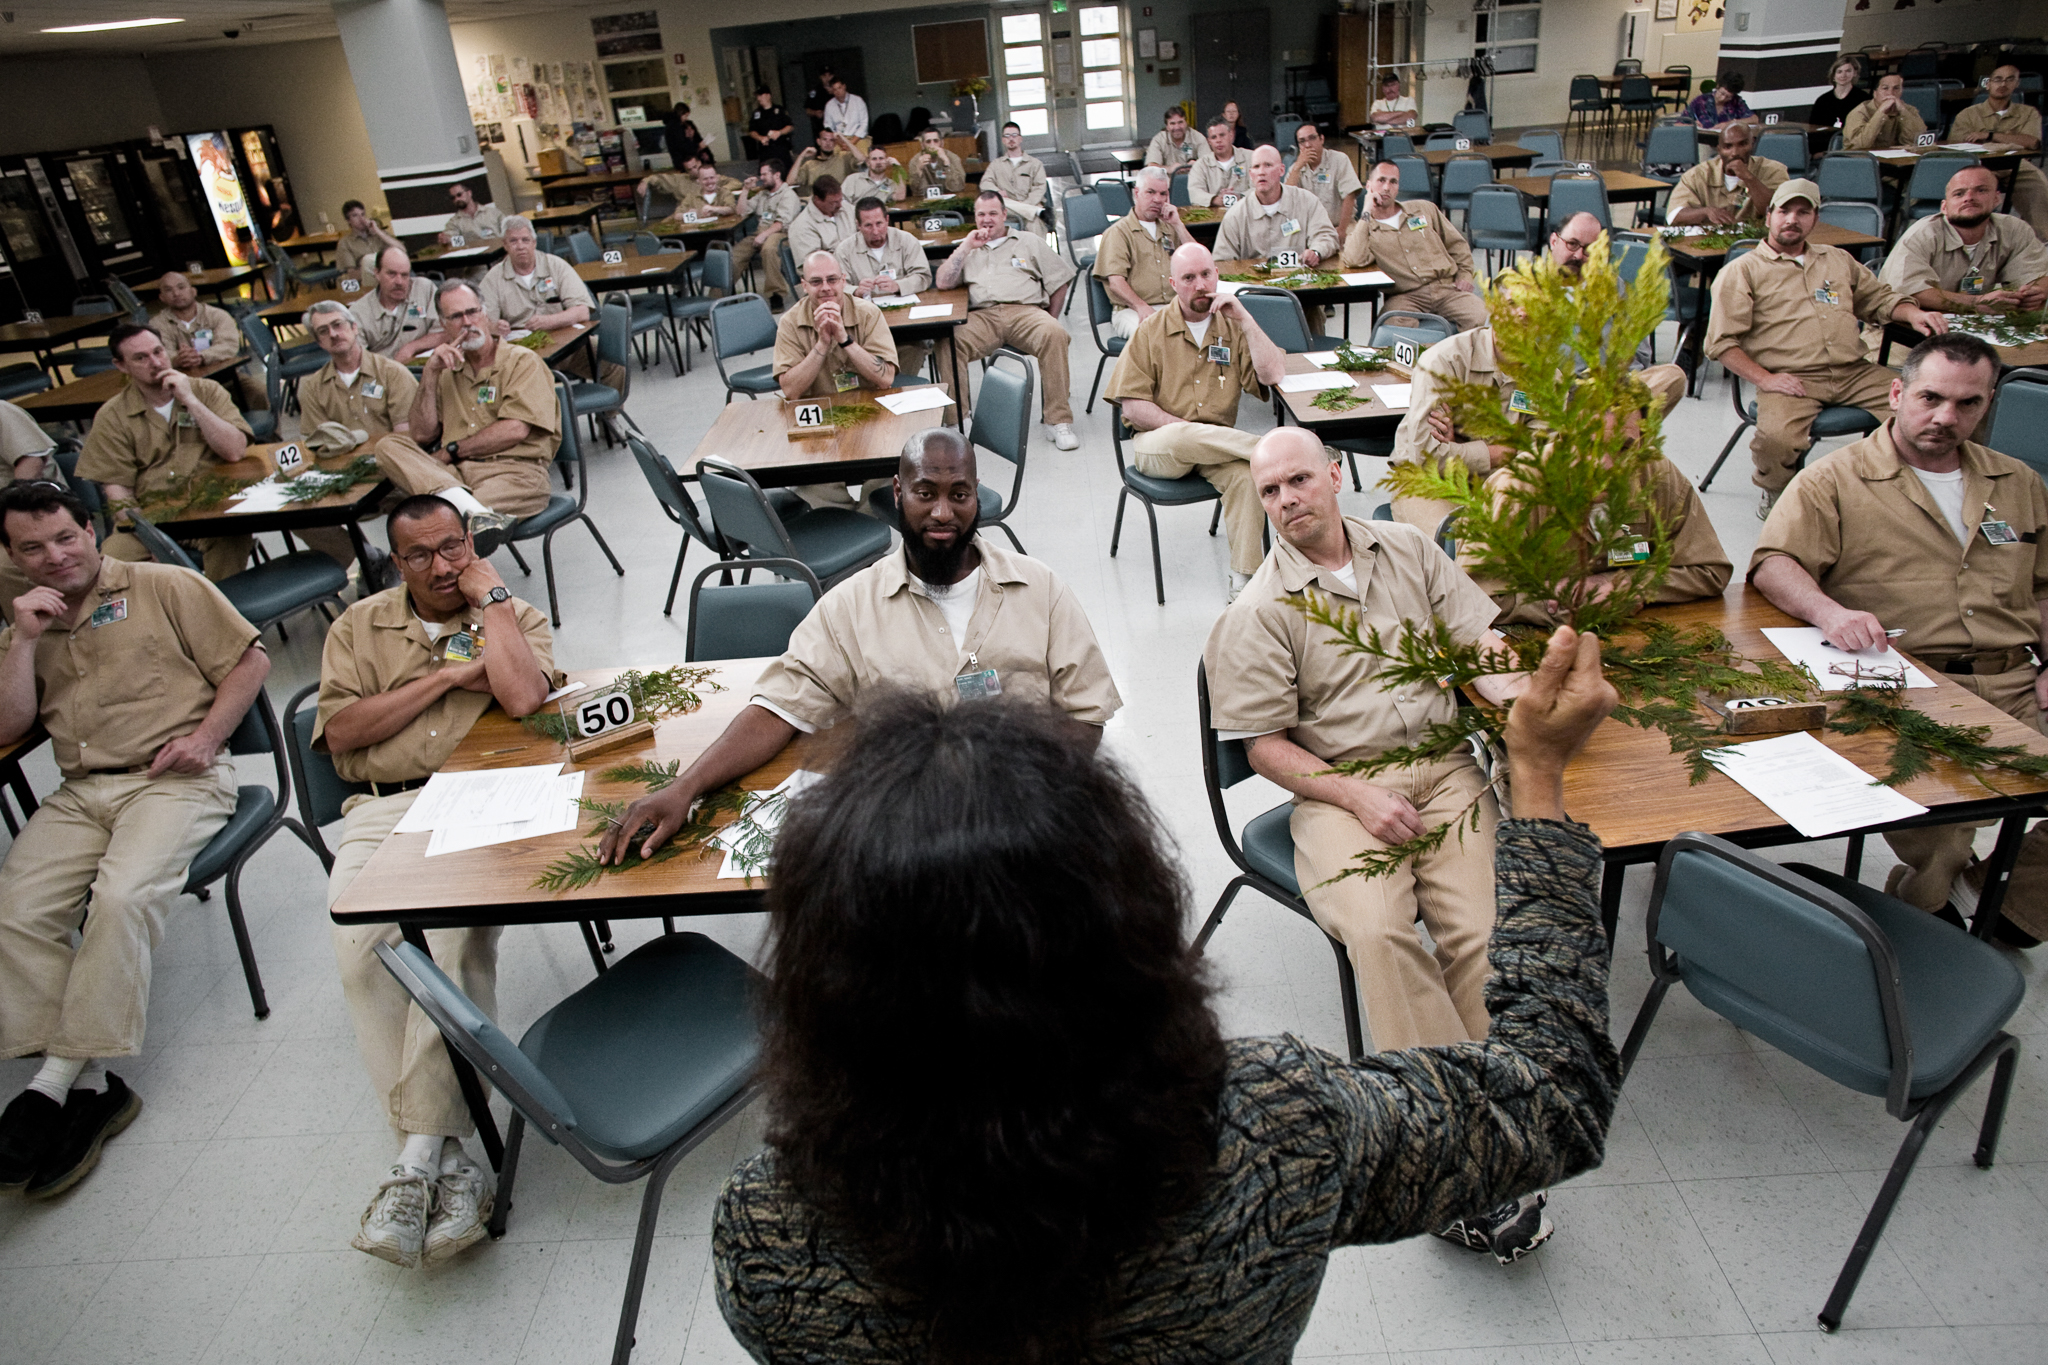 Sustainability in Prisons Project cofounder and forest ecologist Nalini Nadkarni lectures inmates about trees. Photograph by Benjamin Drummond.